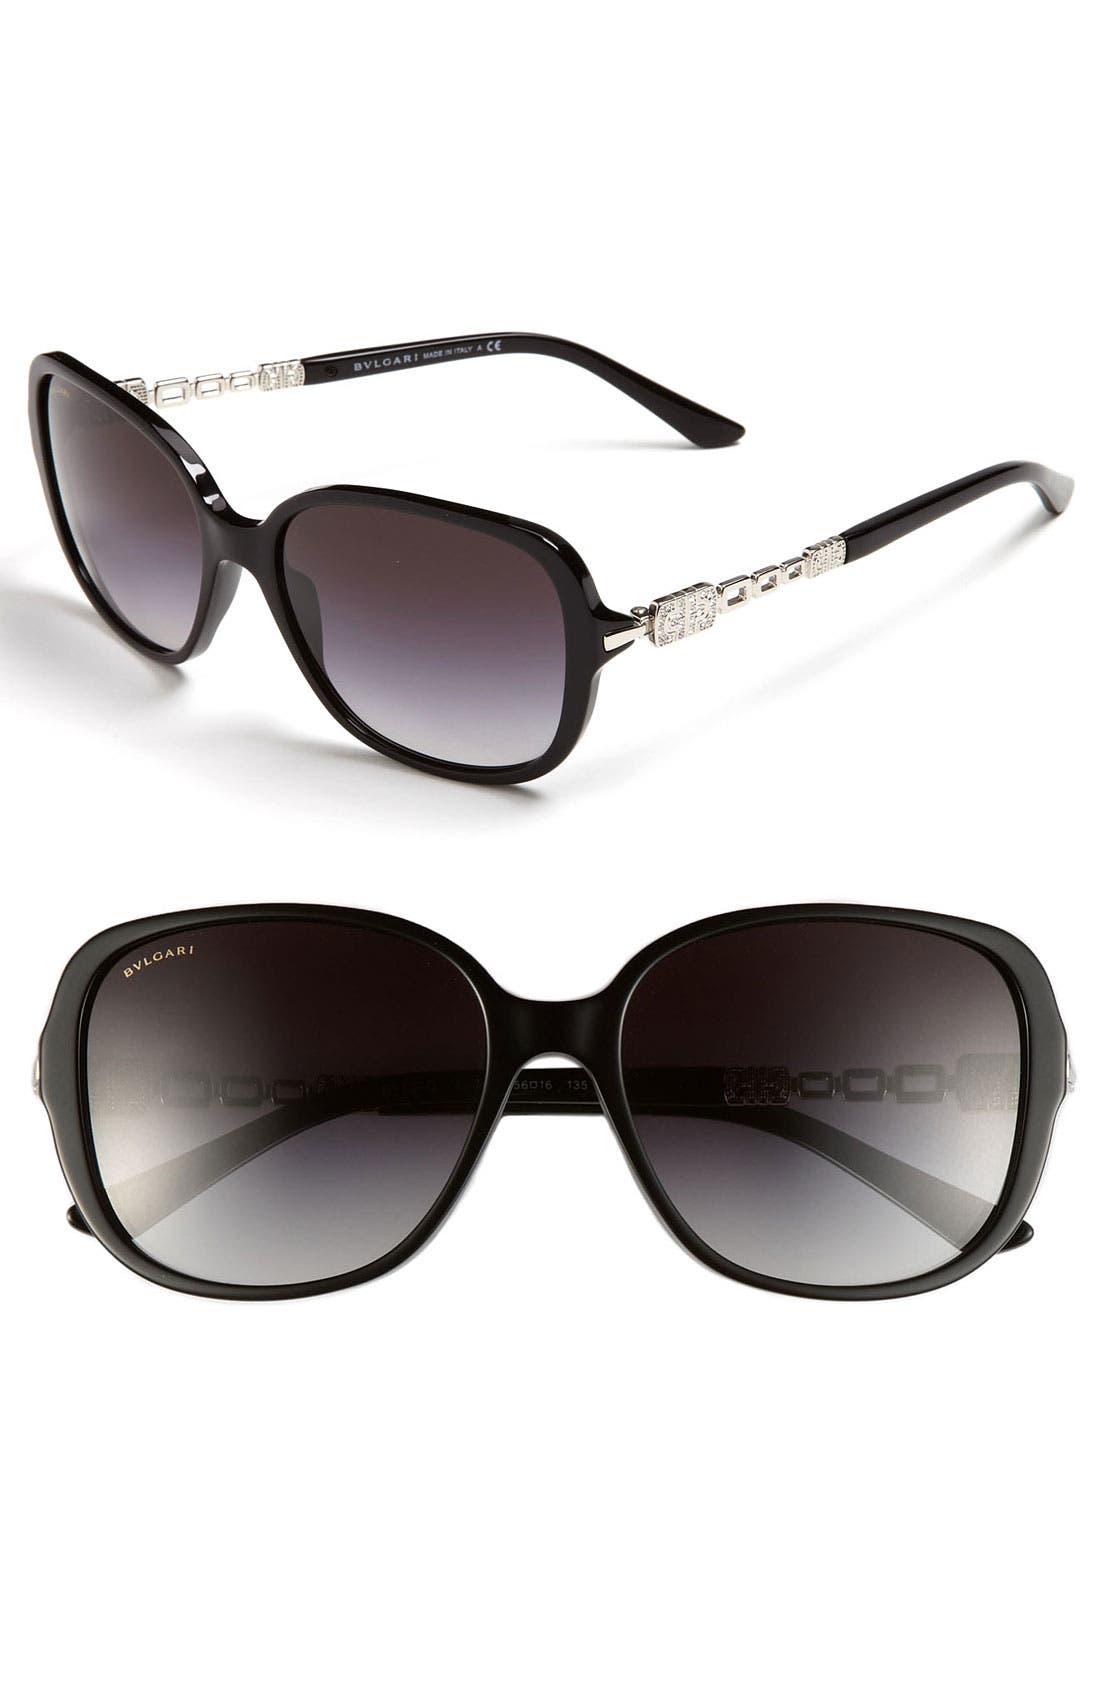 Main Image - BVLGARI 56mm Crystal Chain Temple Sunglasses